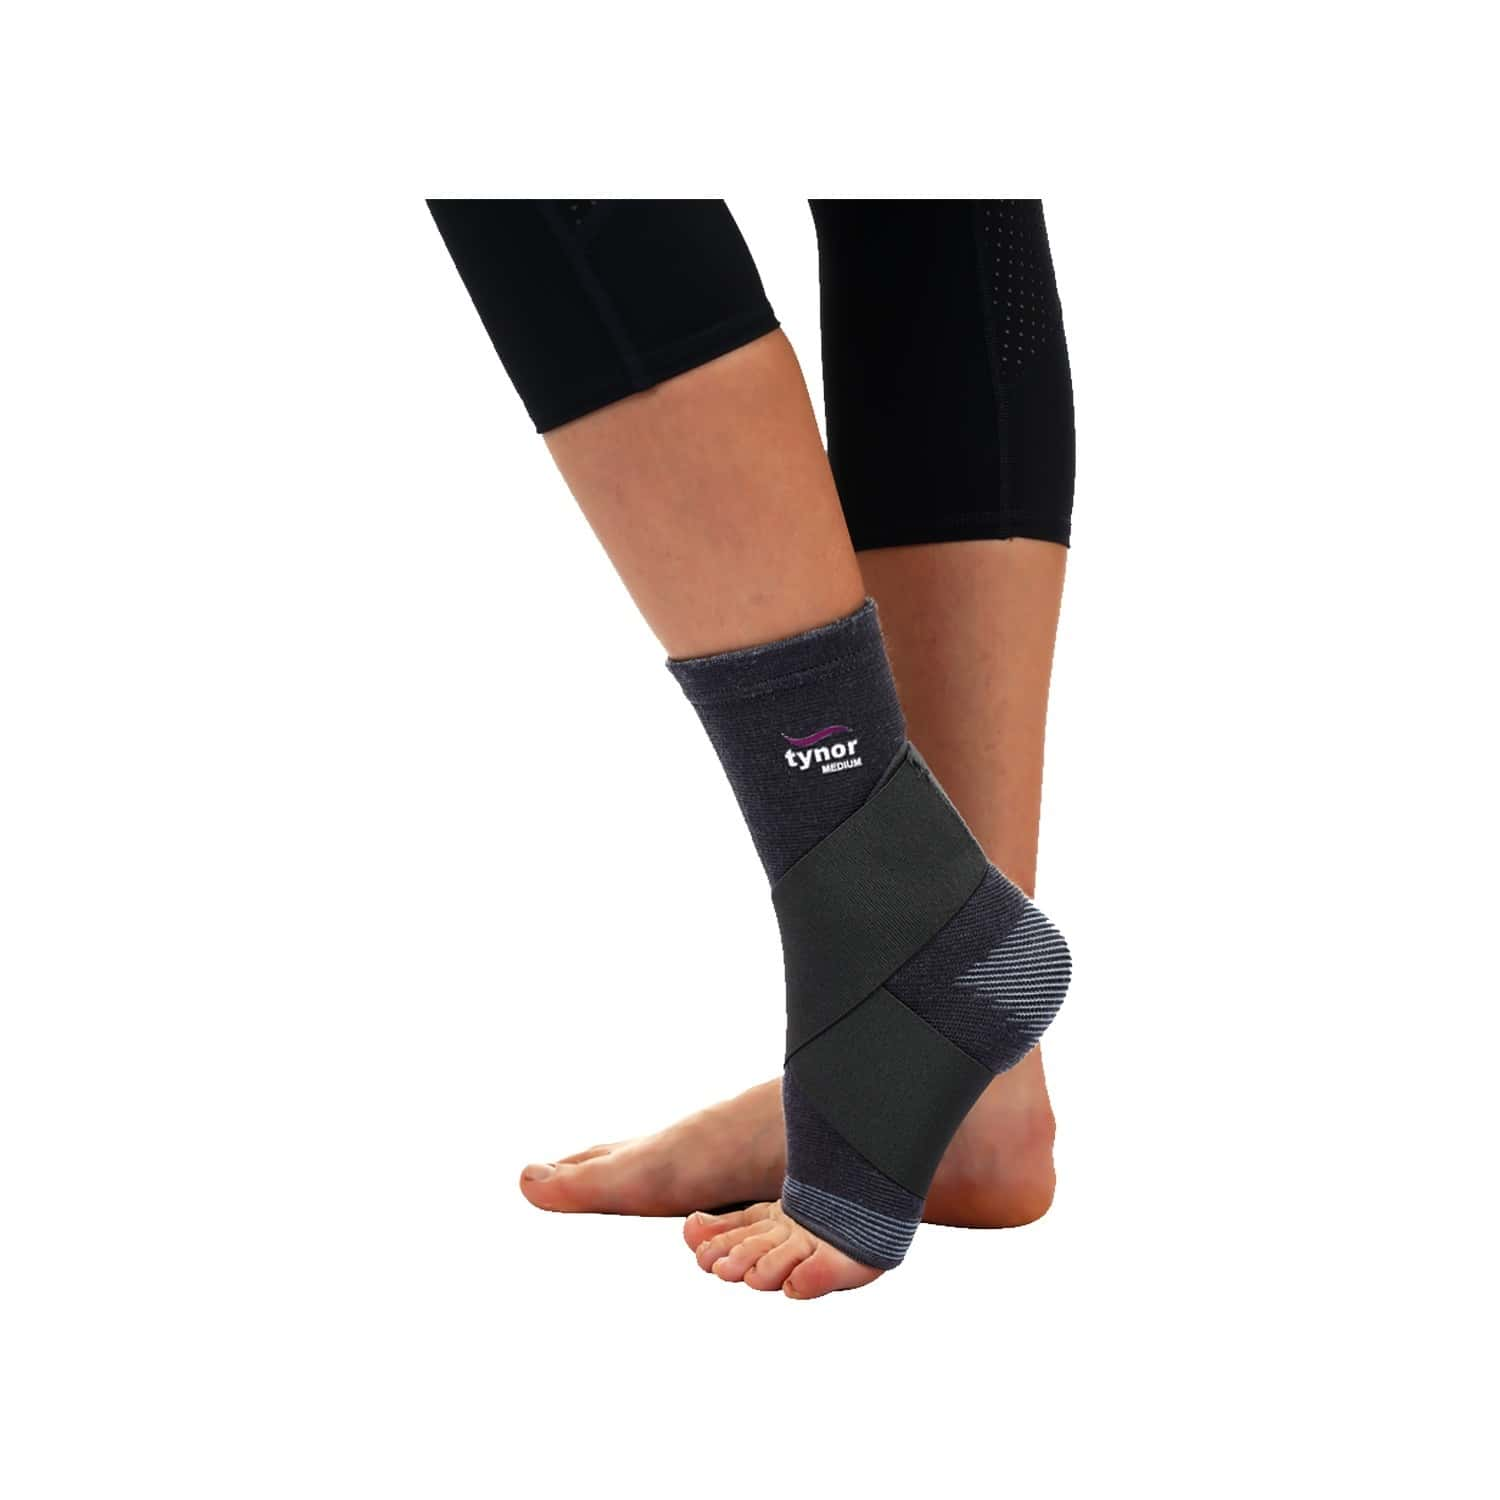 Tynor Ankle Binder ( Compression,pain Relief) - Small